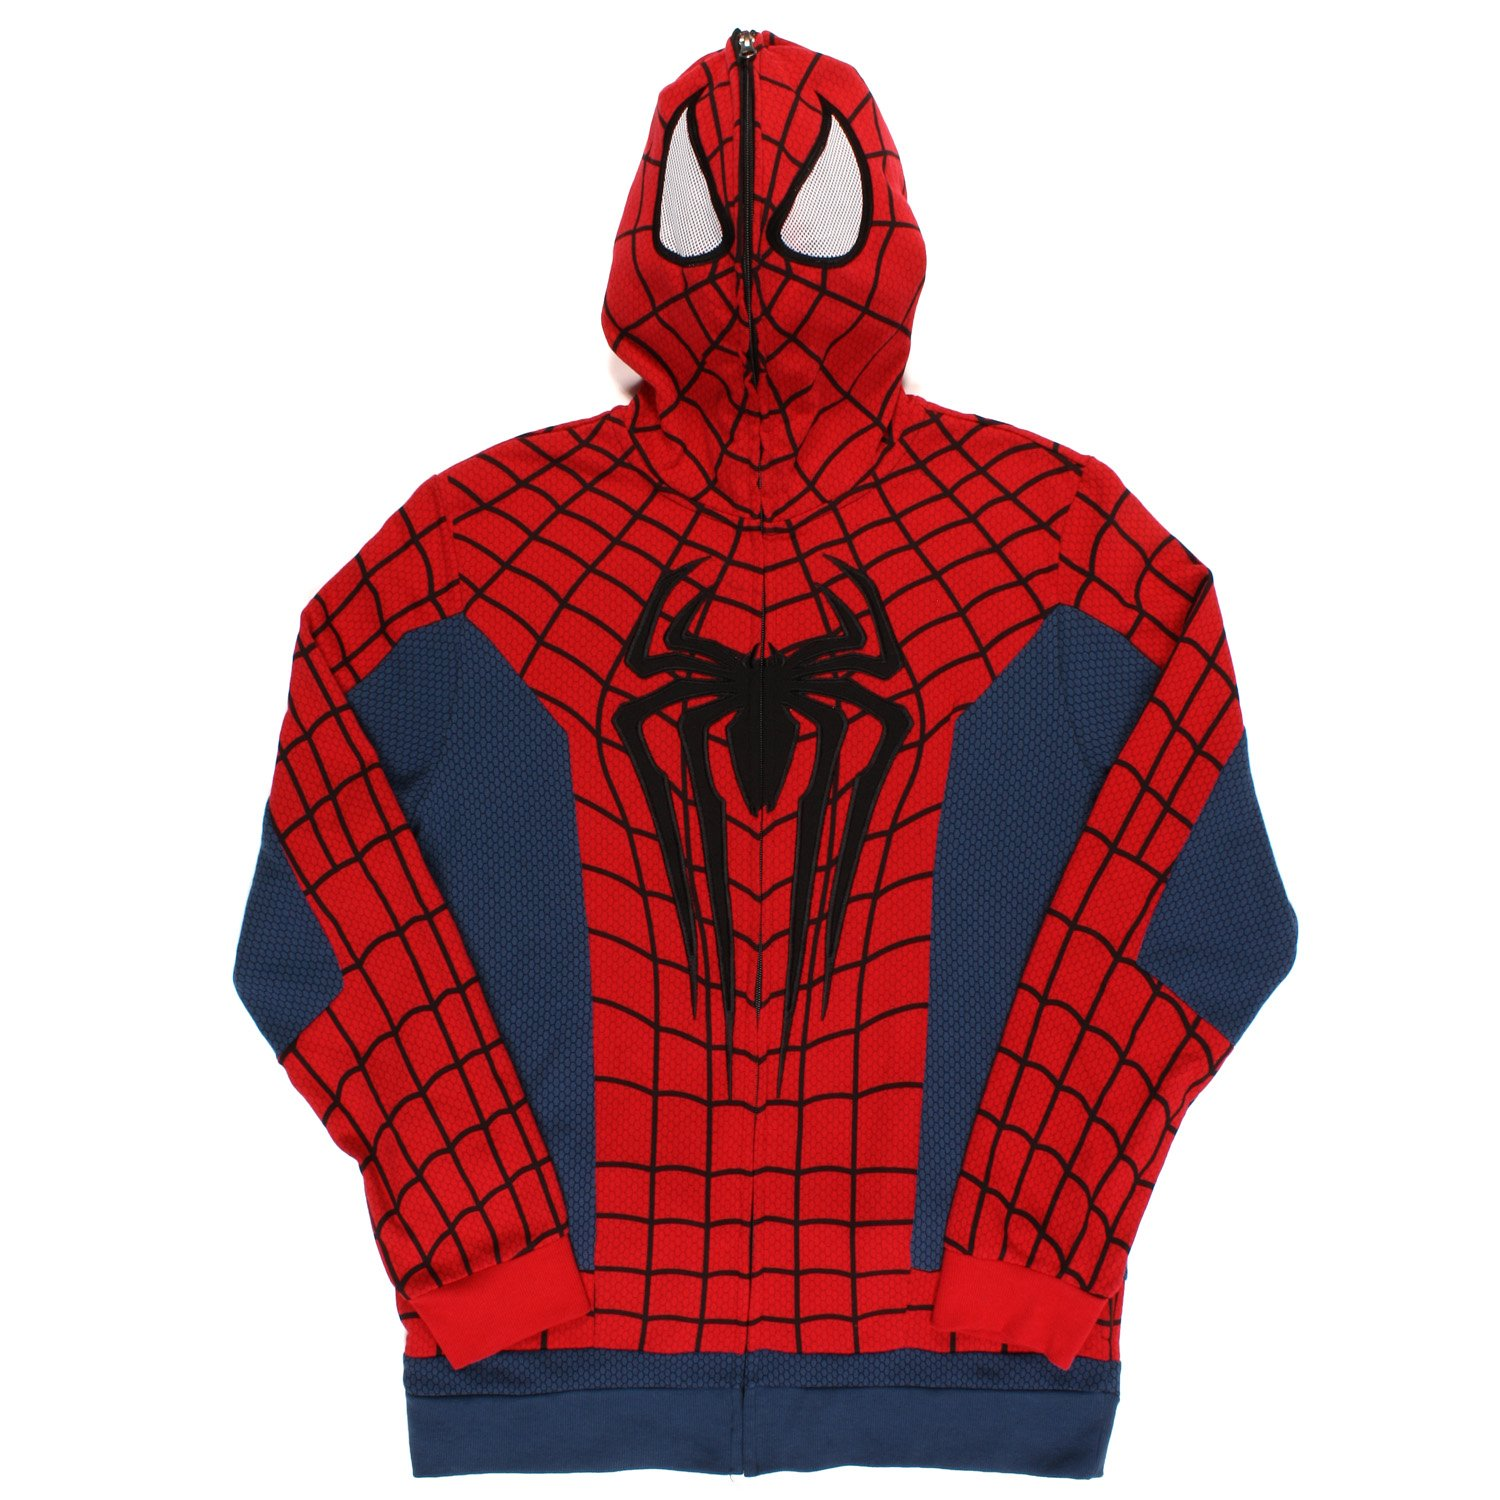 Costume Marvel Spiderman Marvel Spider-man Costume Full